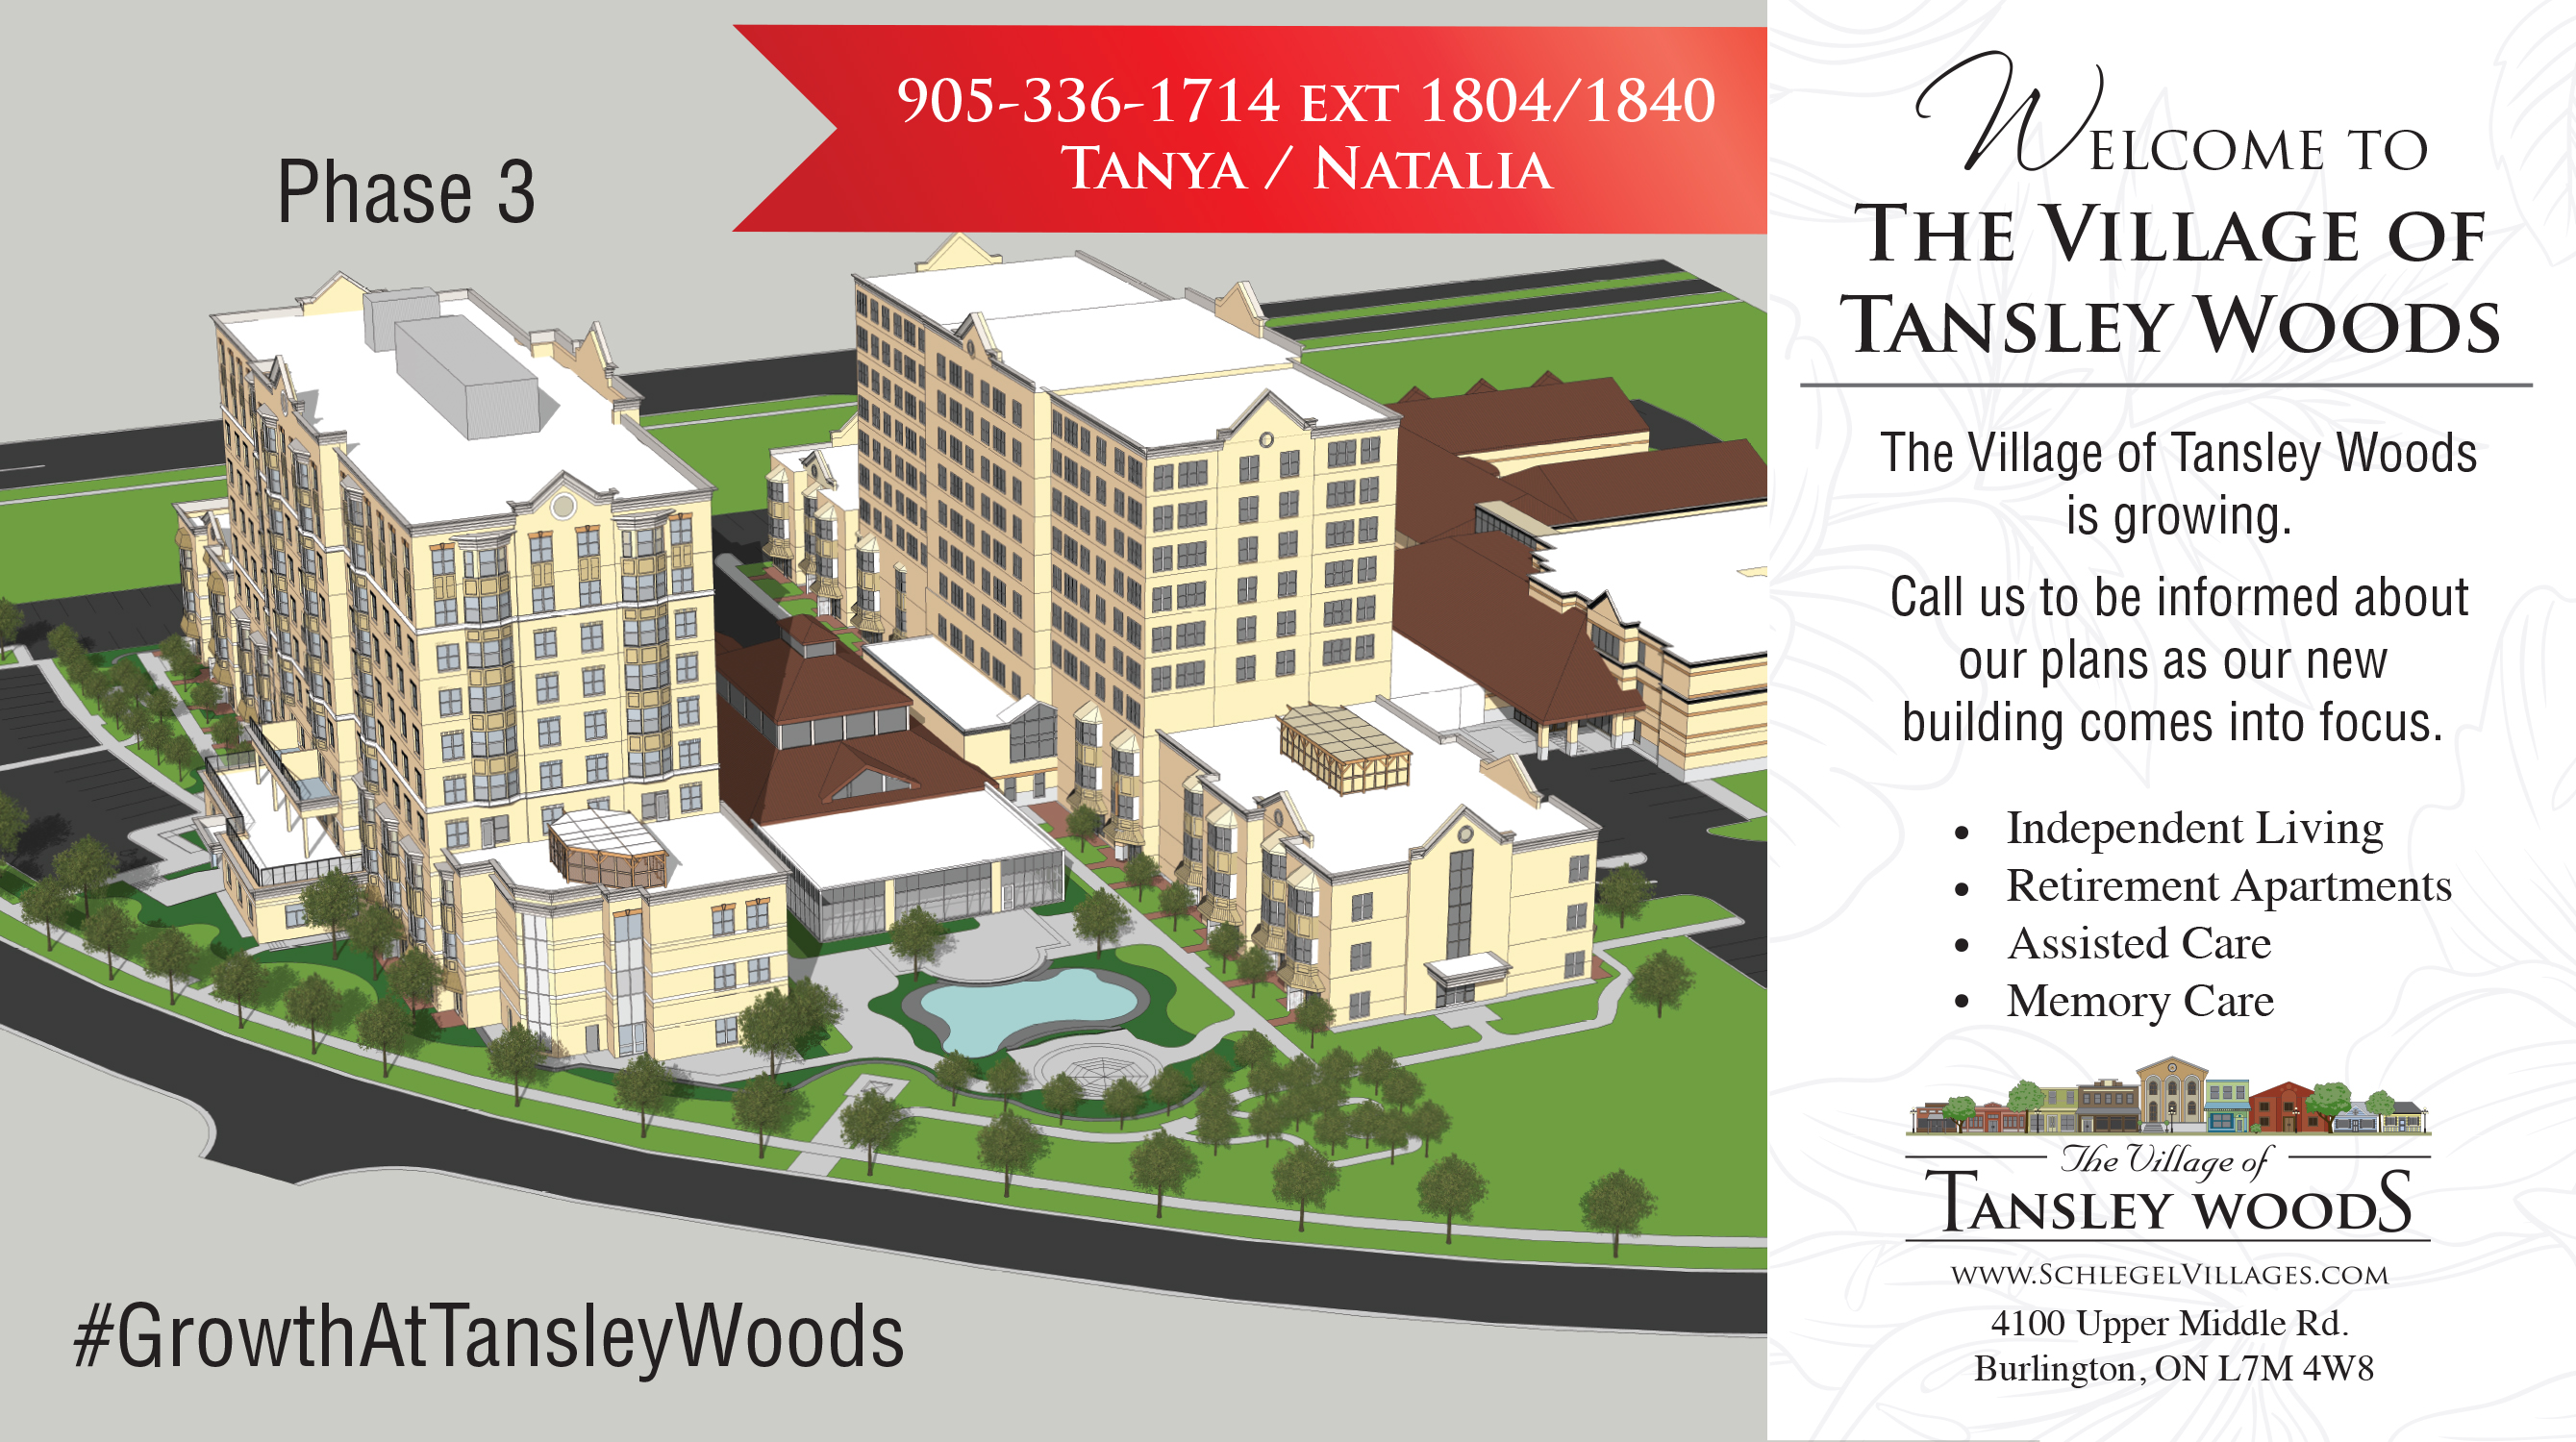 Tansley Woods Growth Retirement